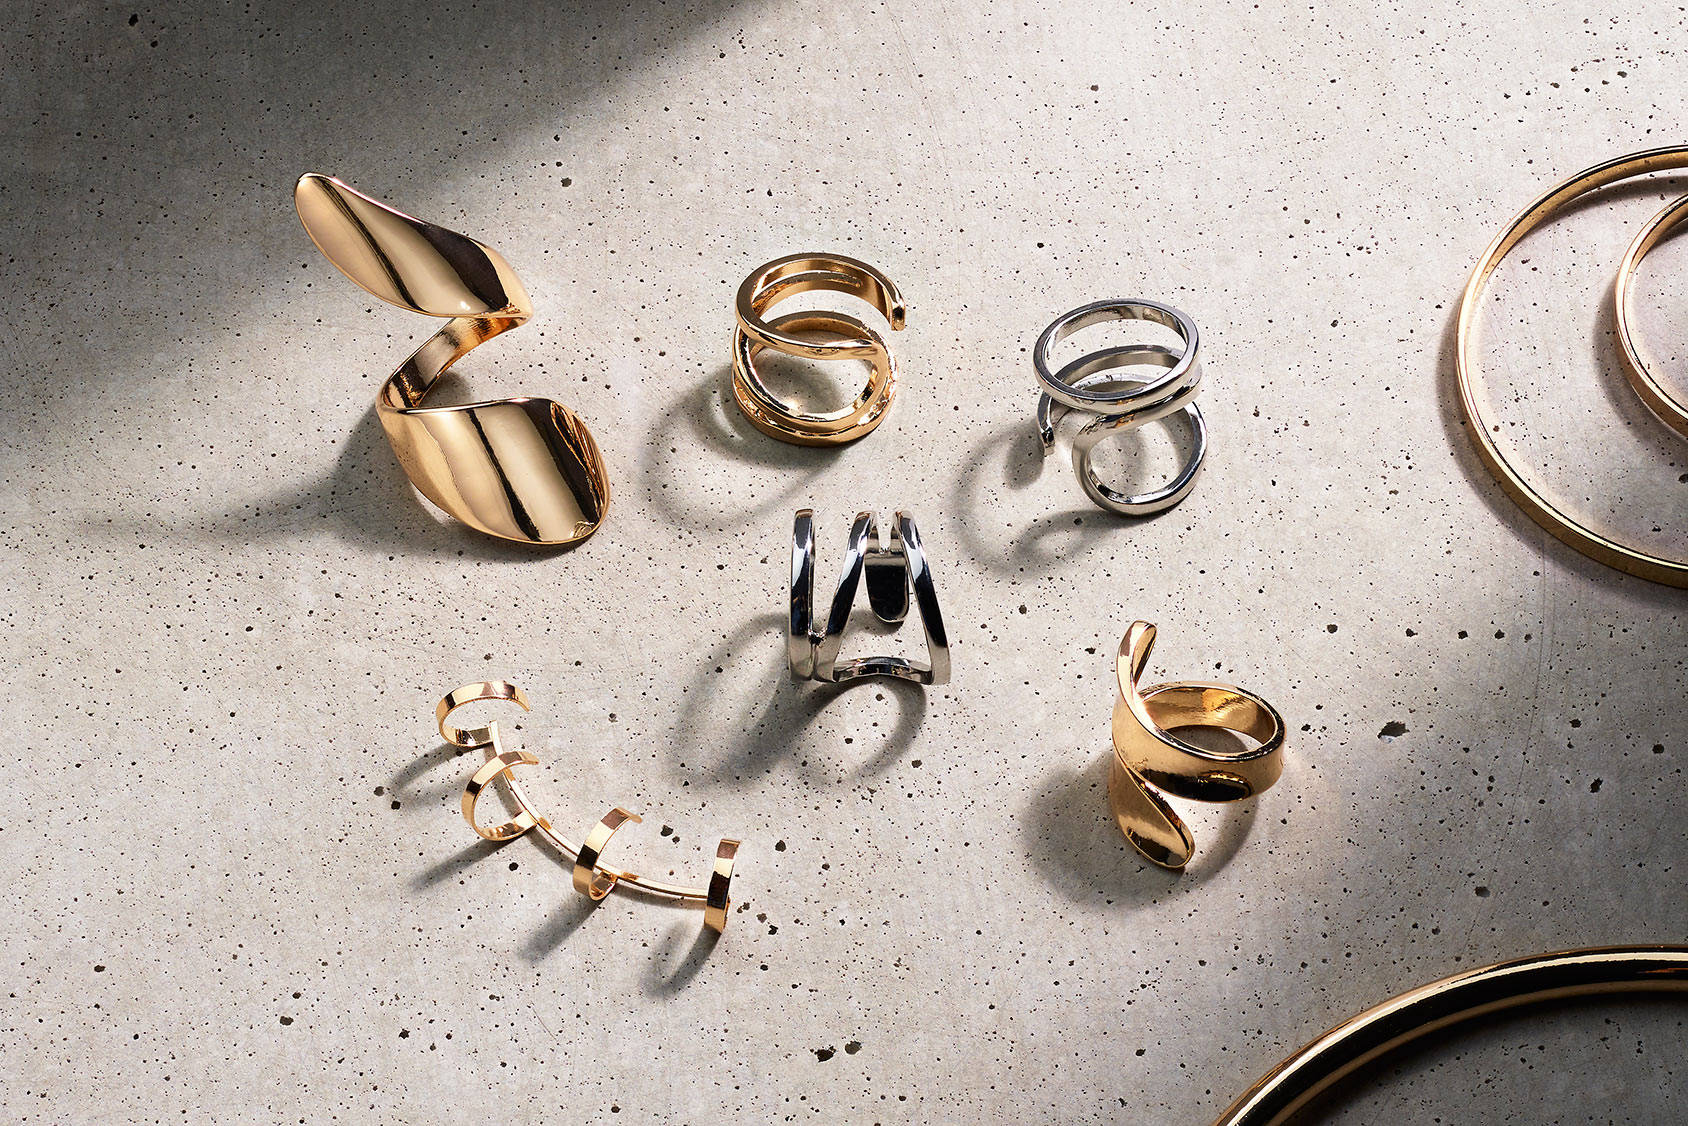 The new jewellery shapes